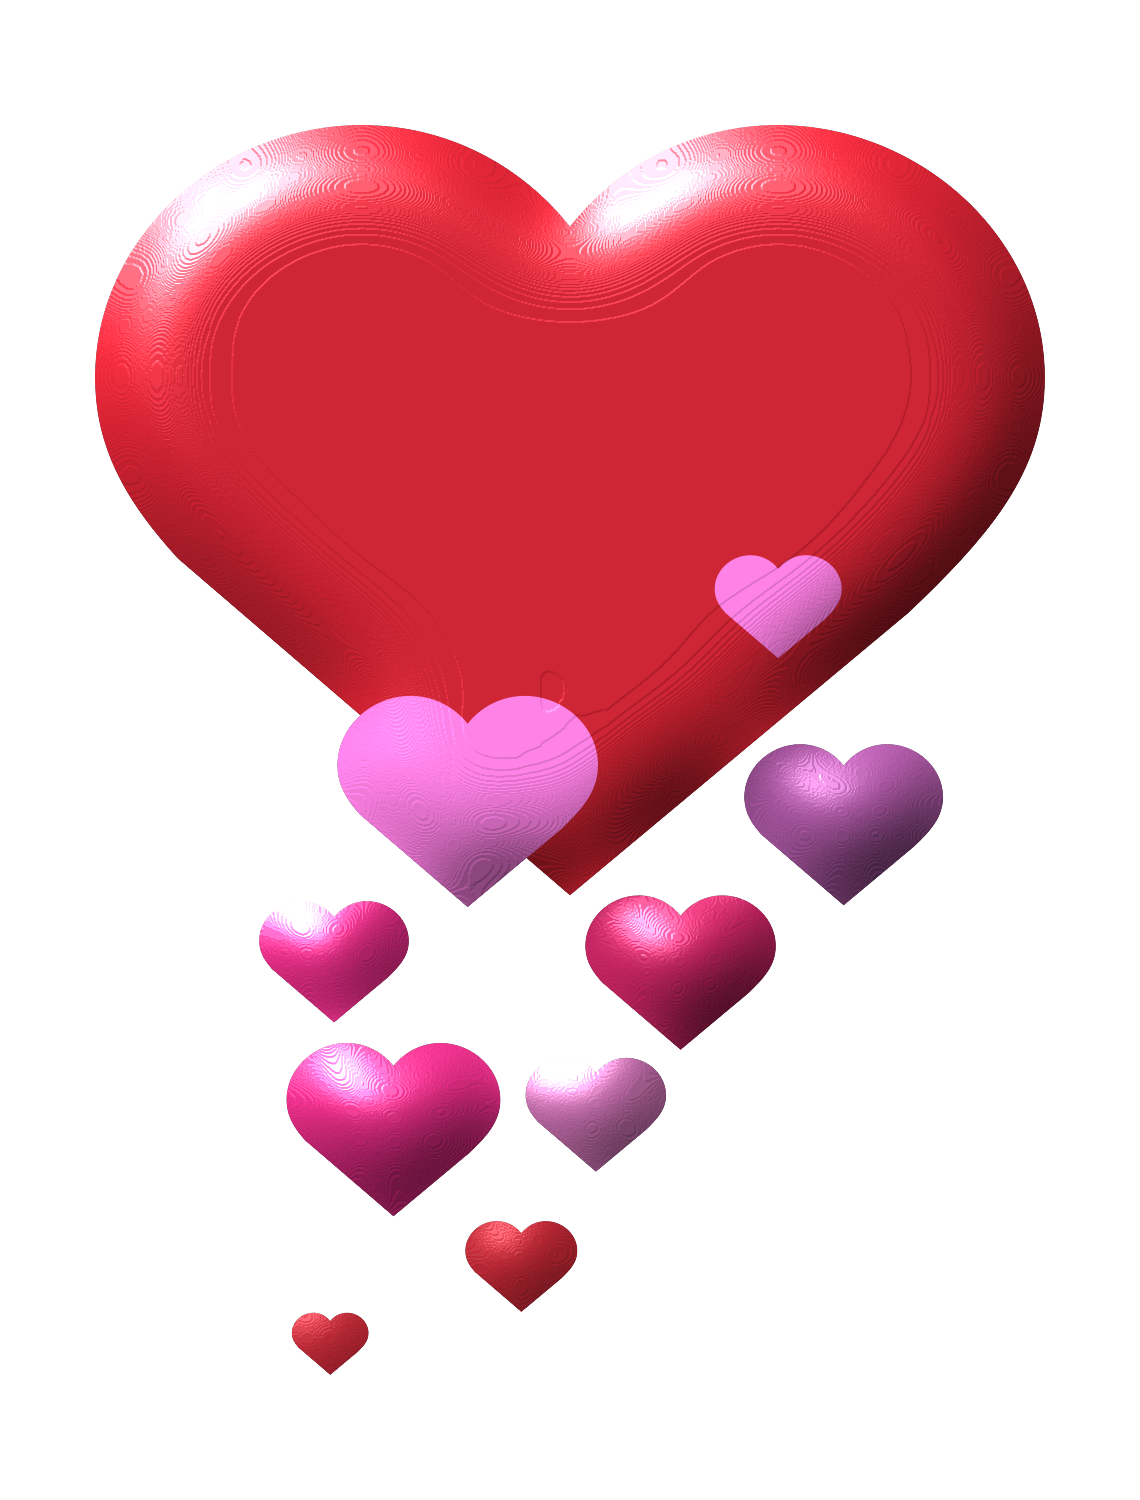 Heart my heart of hearts pinterest heart